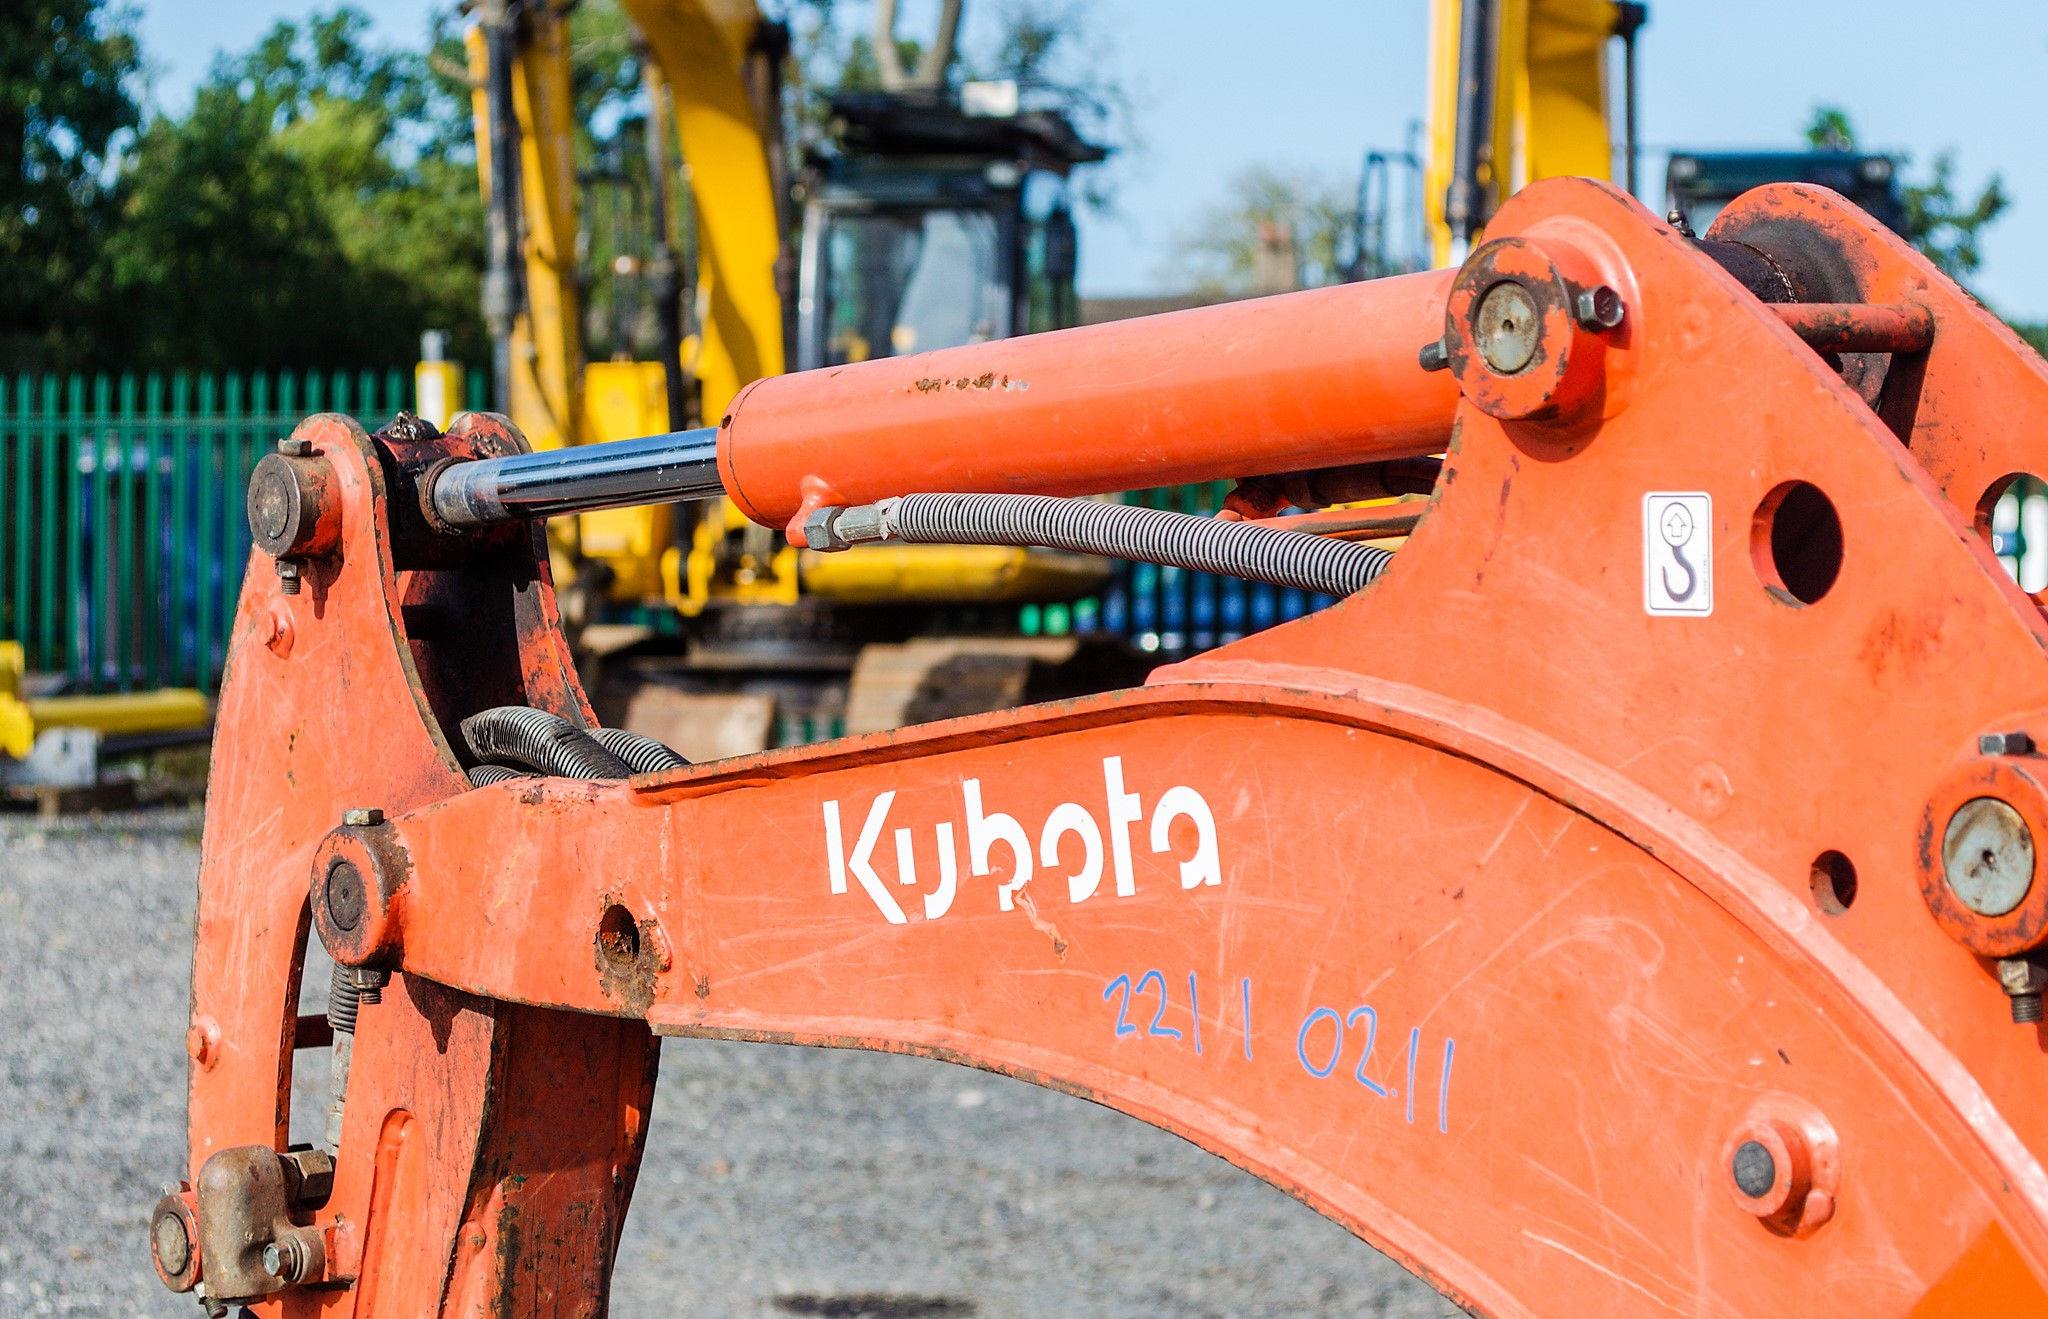 Kubota KX36-3 1.5 tonne rubber tracked mini excavator Year: 2007 S/N: Z077298 Recorded Hours: 4205 - Image 13 of 18